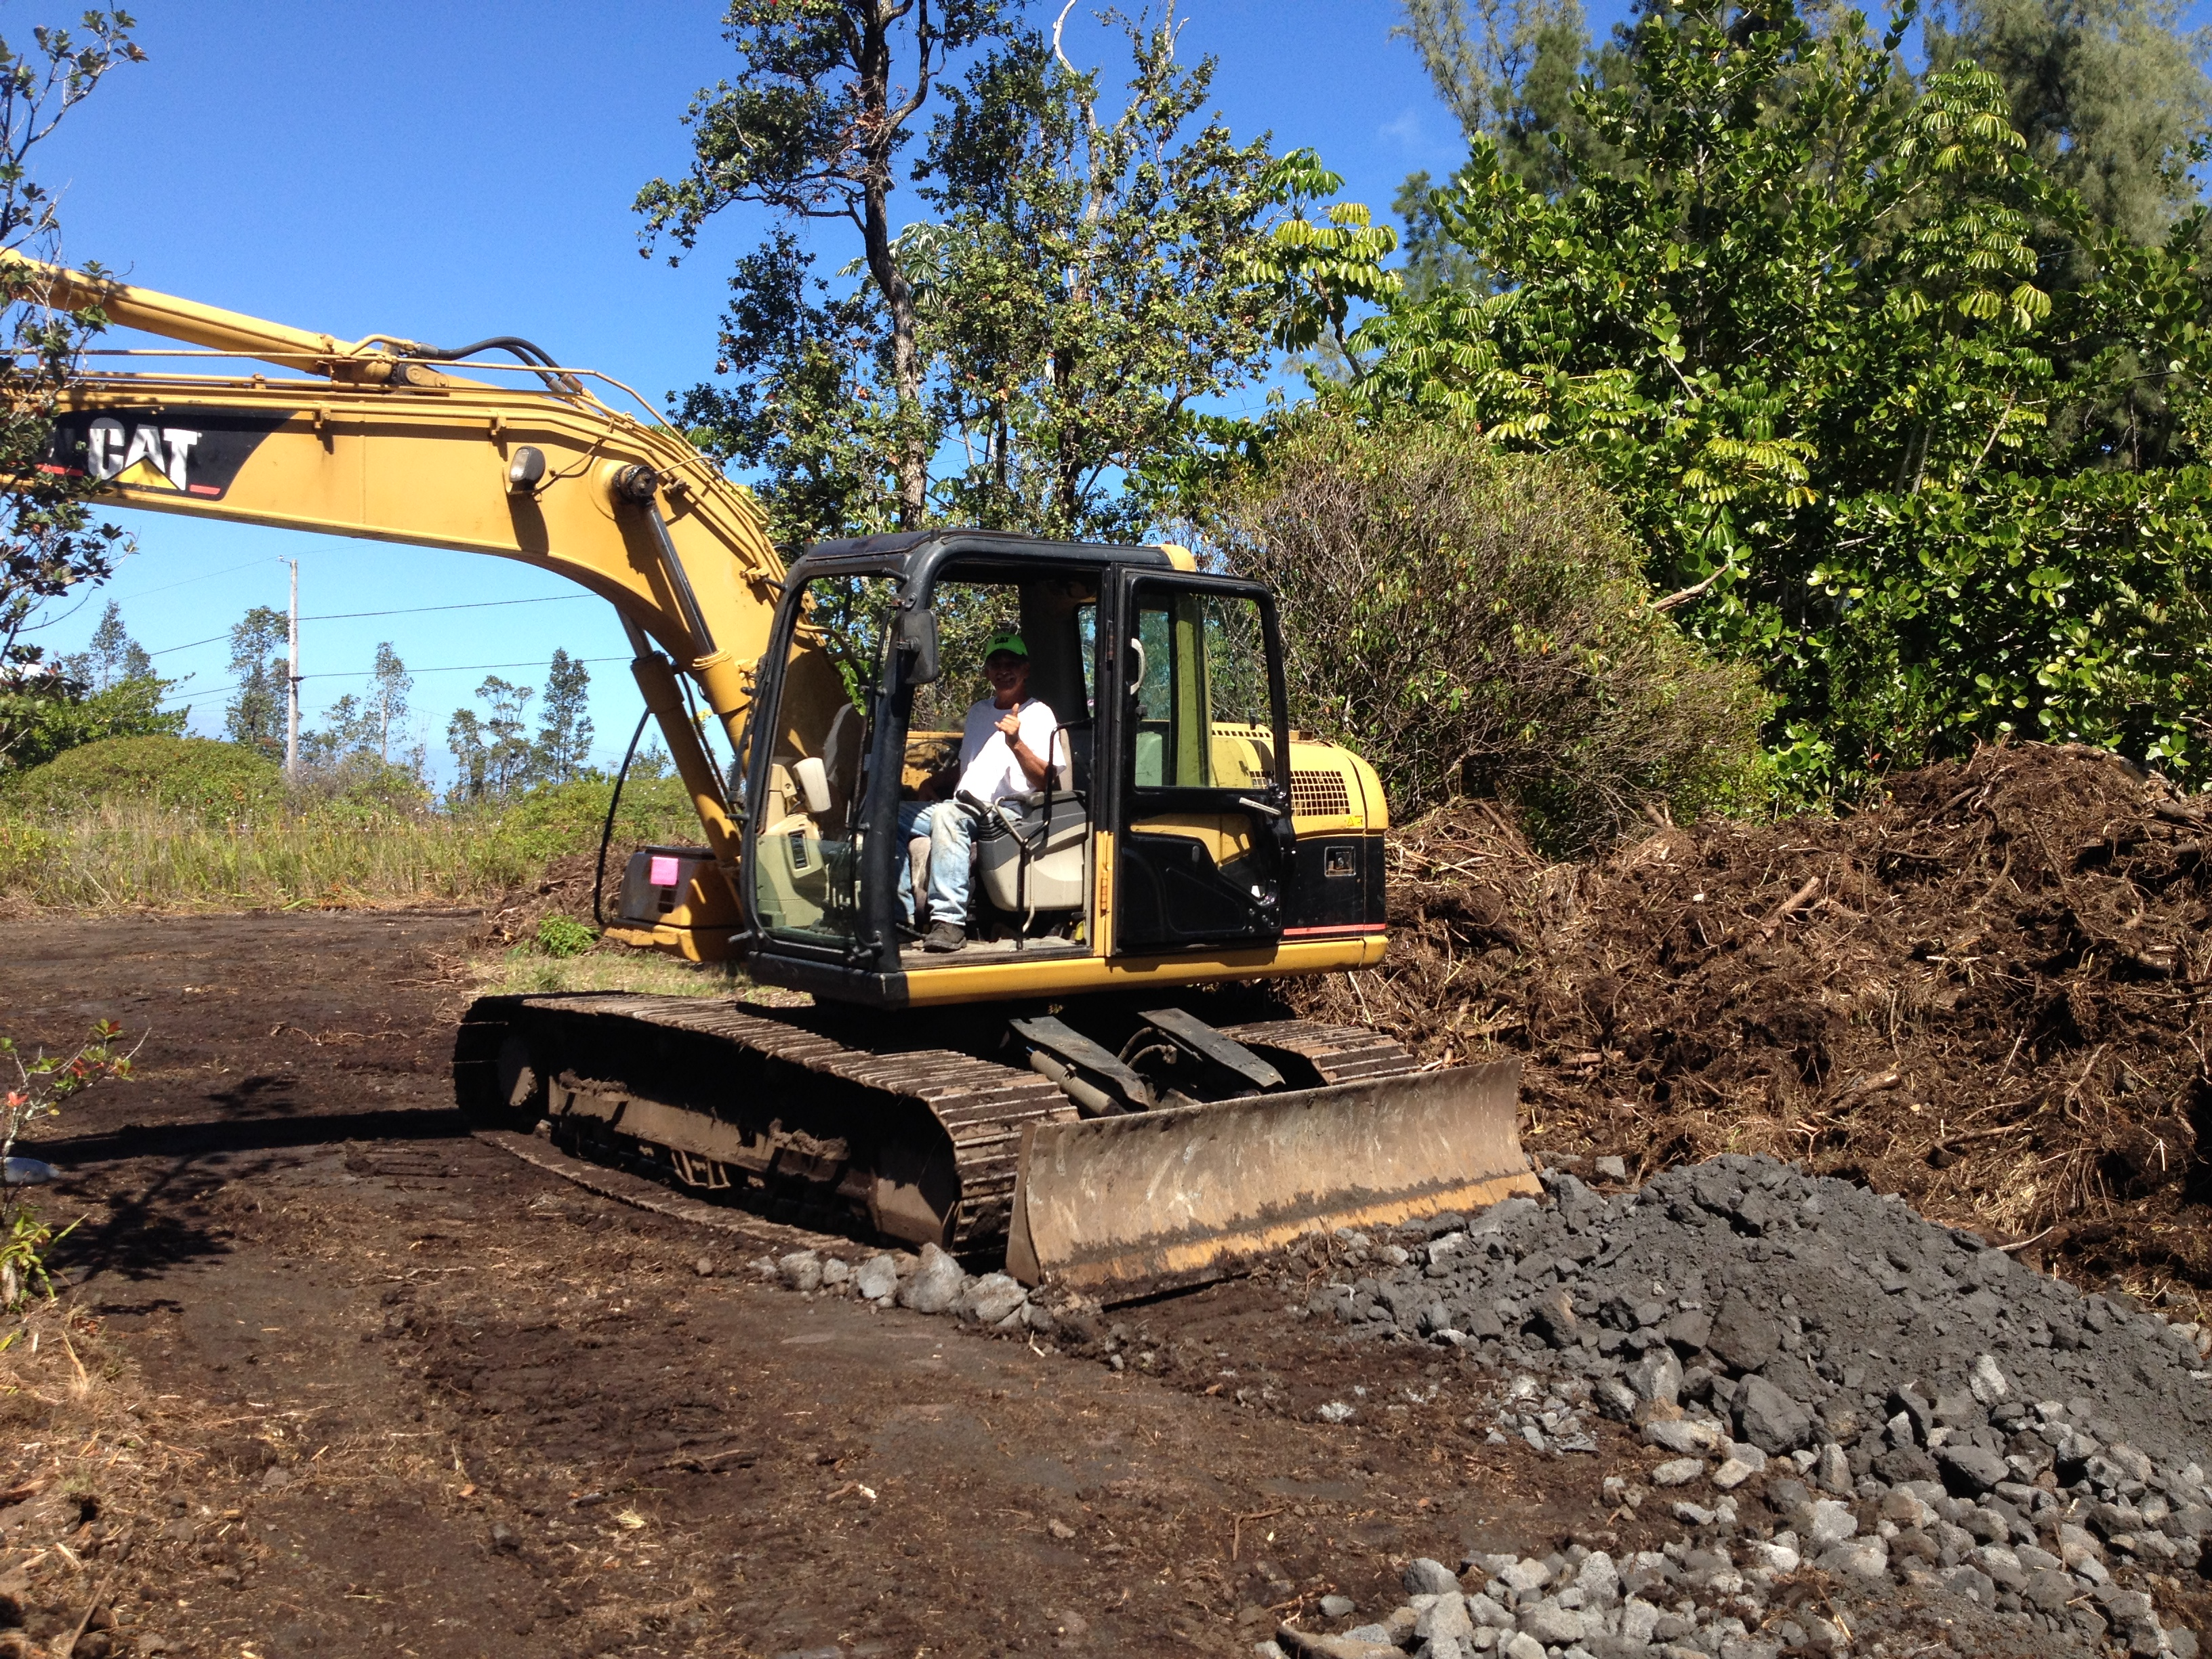 Plumbing experts using crane for septic system excavation and installation in Hilo, Hawaii